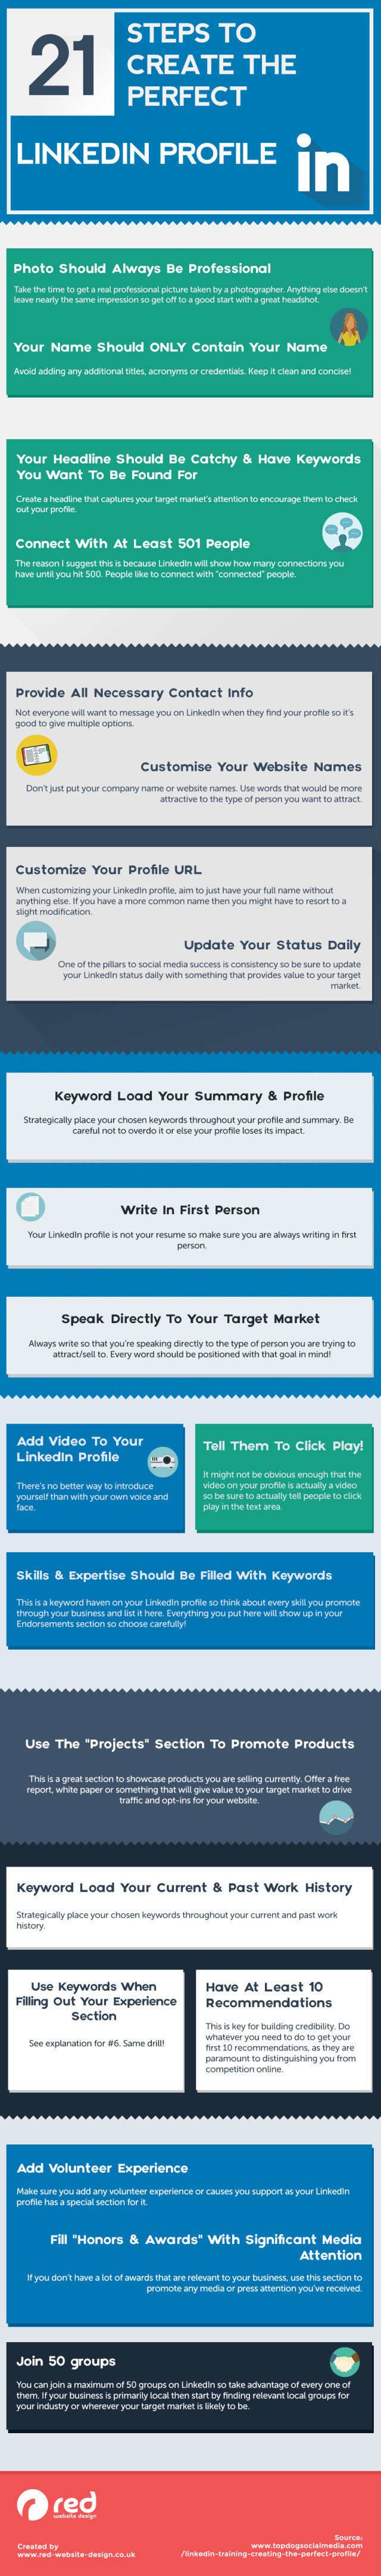 Twenty one Steps to Create the Perfect #LinkedIn Profile #Infographic